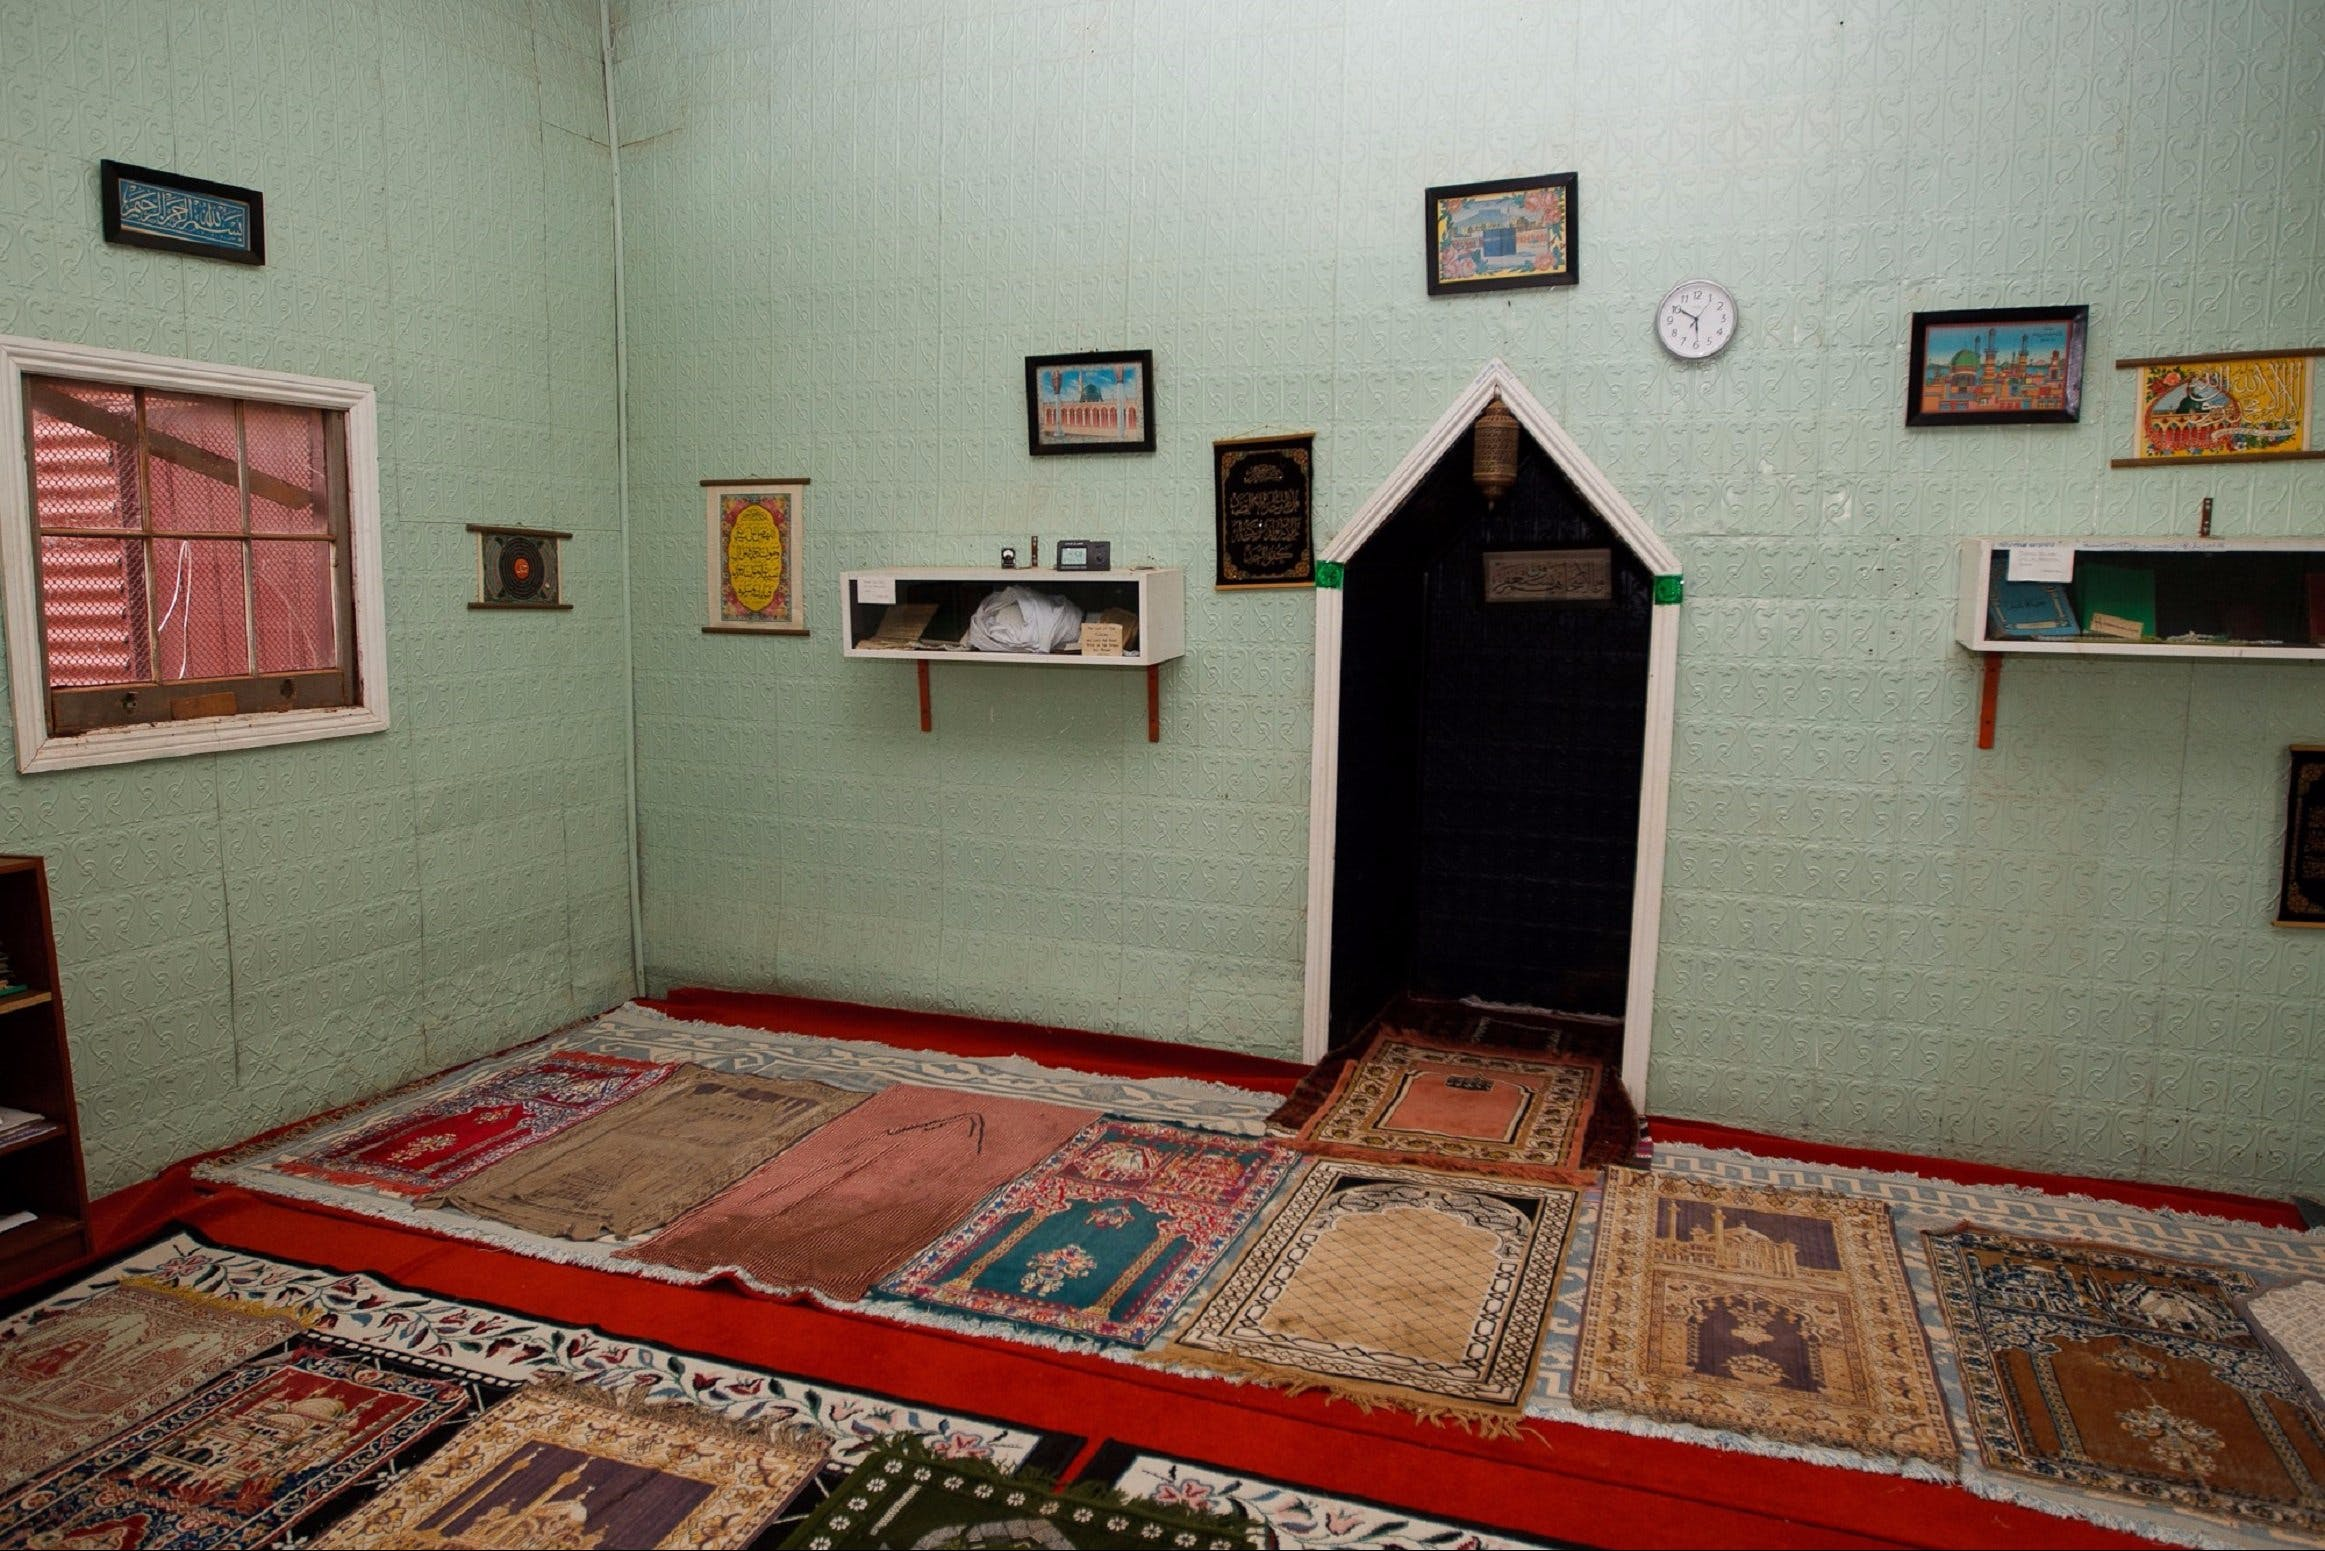 Afghan Mosque - Accommodation in Bendigo